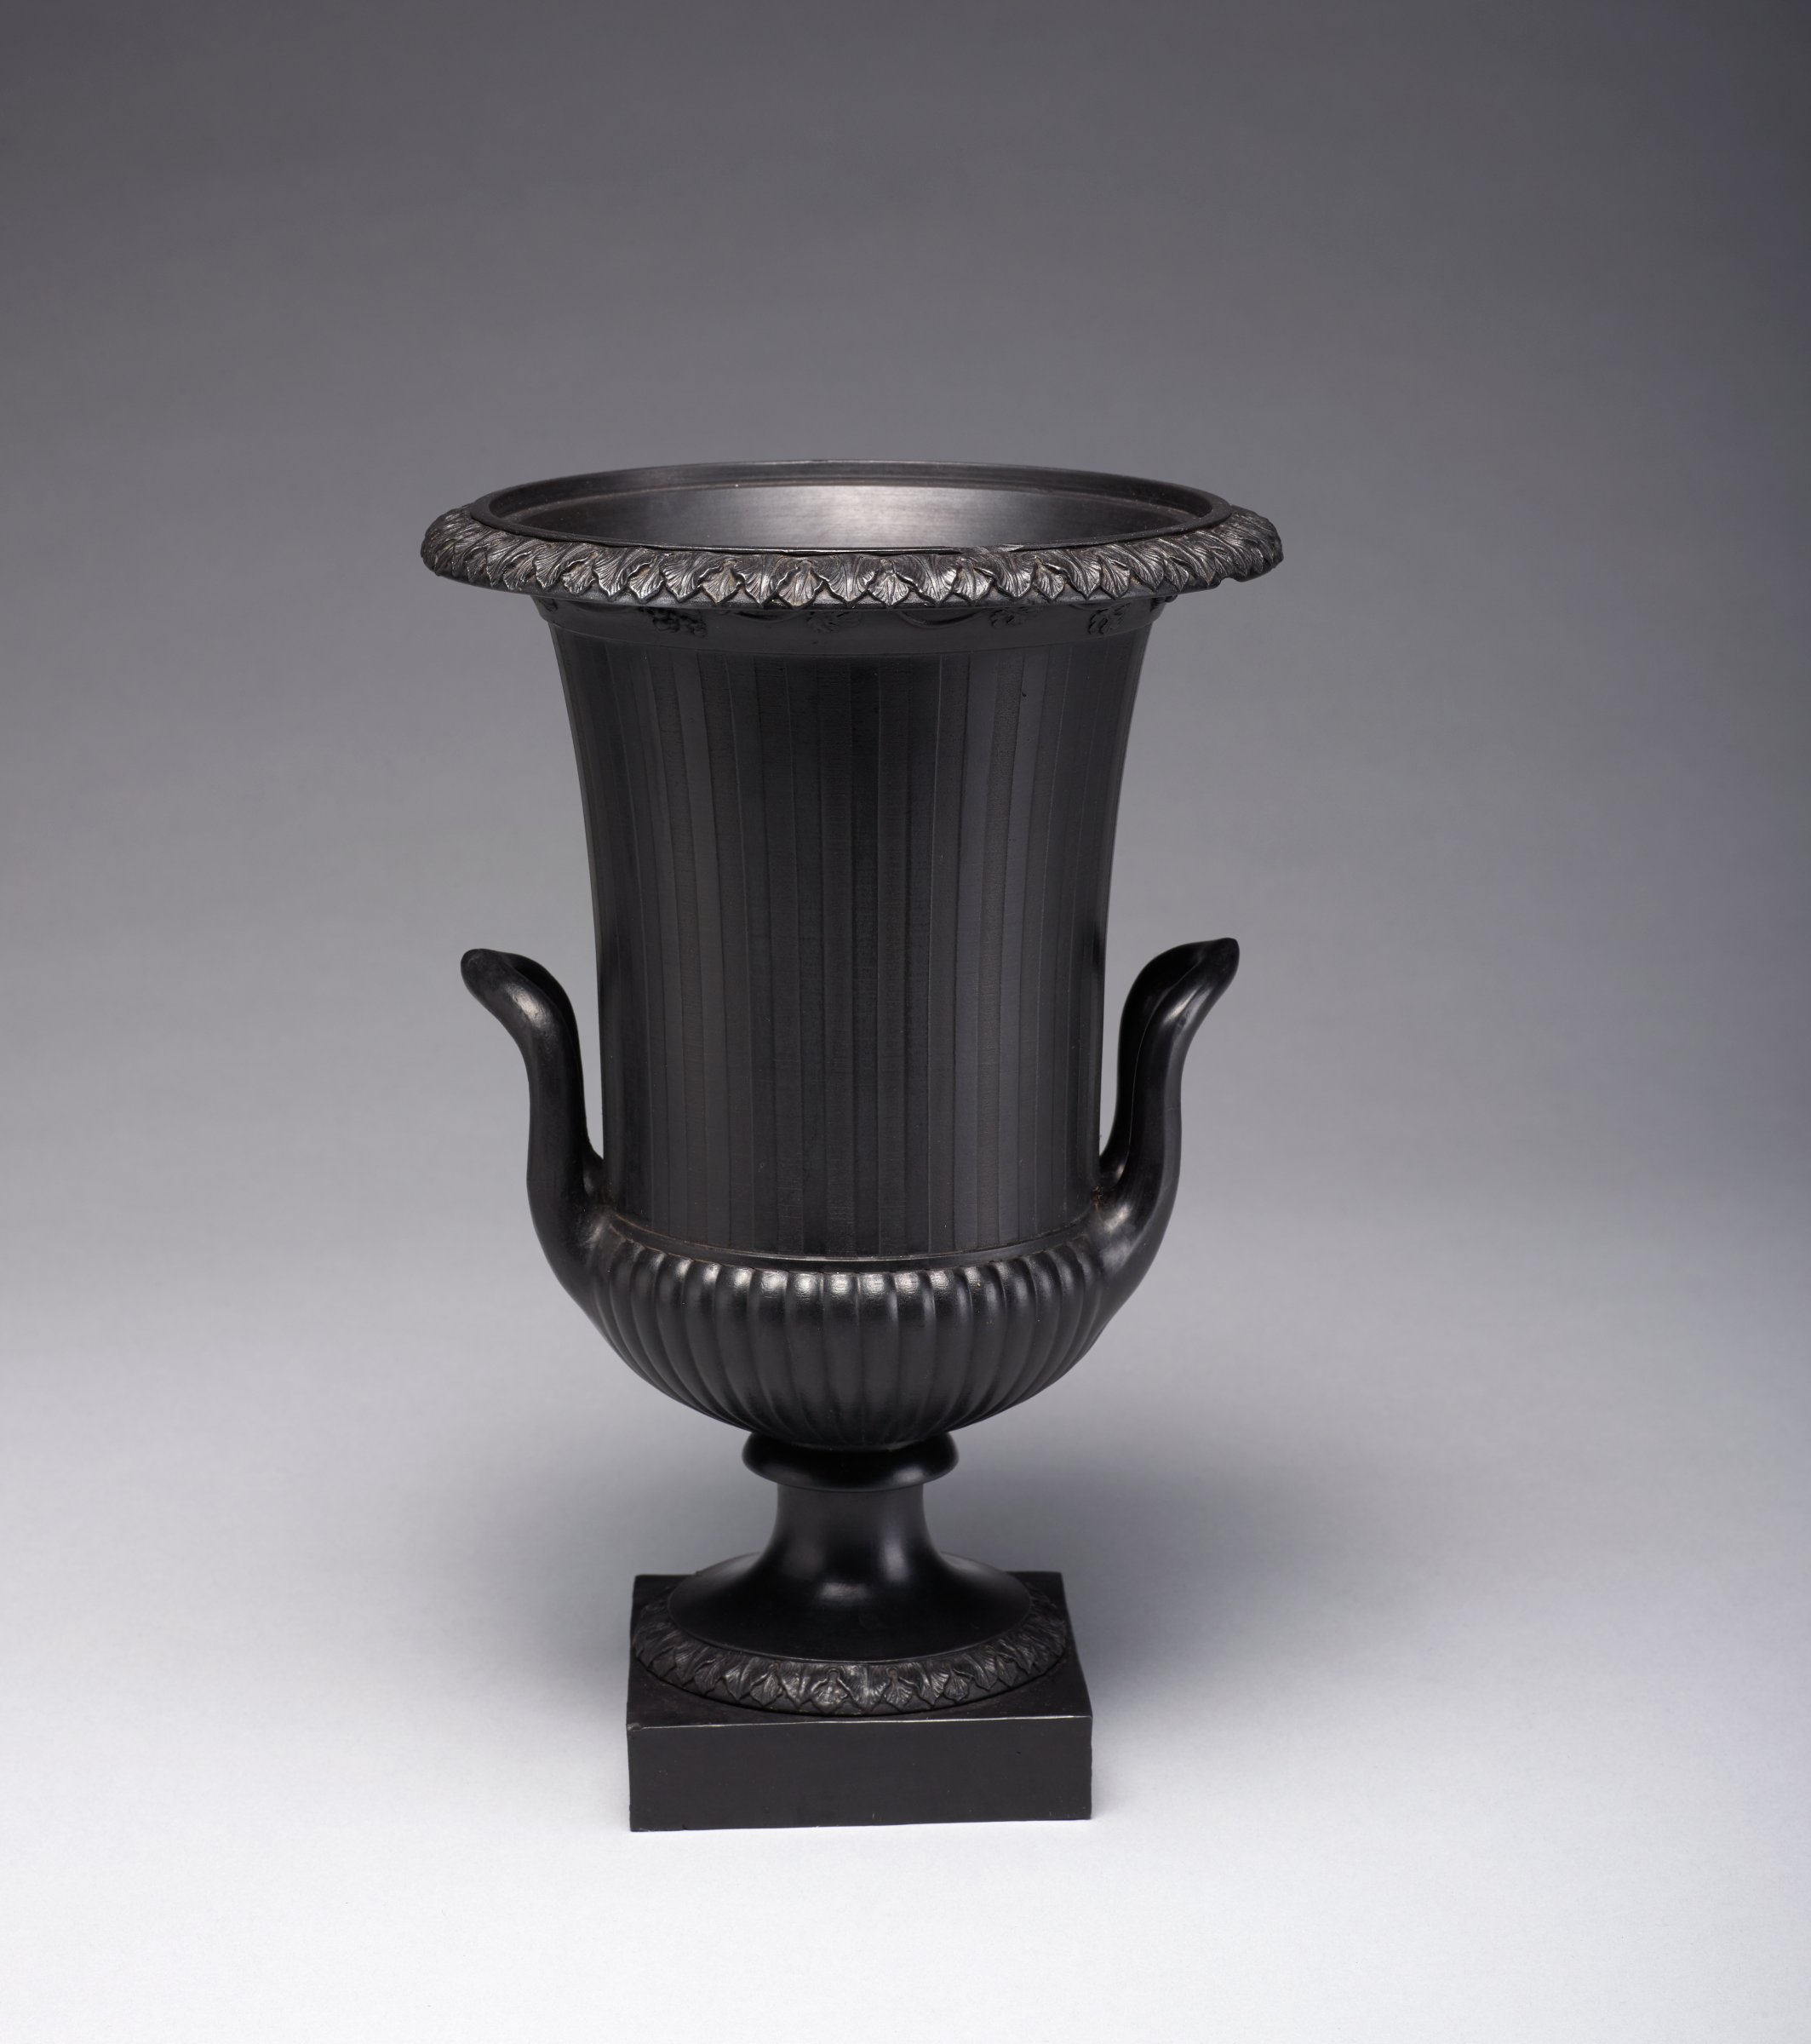 Campana vase of black basalt on small square plinth, the foot with a band of overlapping leaves, the lower body gadrooned and the upper body engine turned, with a band of overlapping acanthus leaves around the flared lip and on the underside of the lip a band of grape leaves and bunches of grapes on a vine, with two short loop handles, the cover missing.